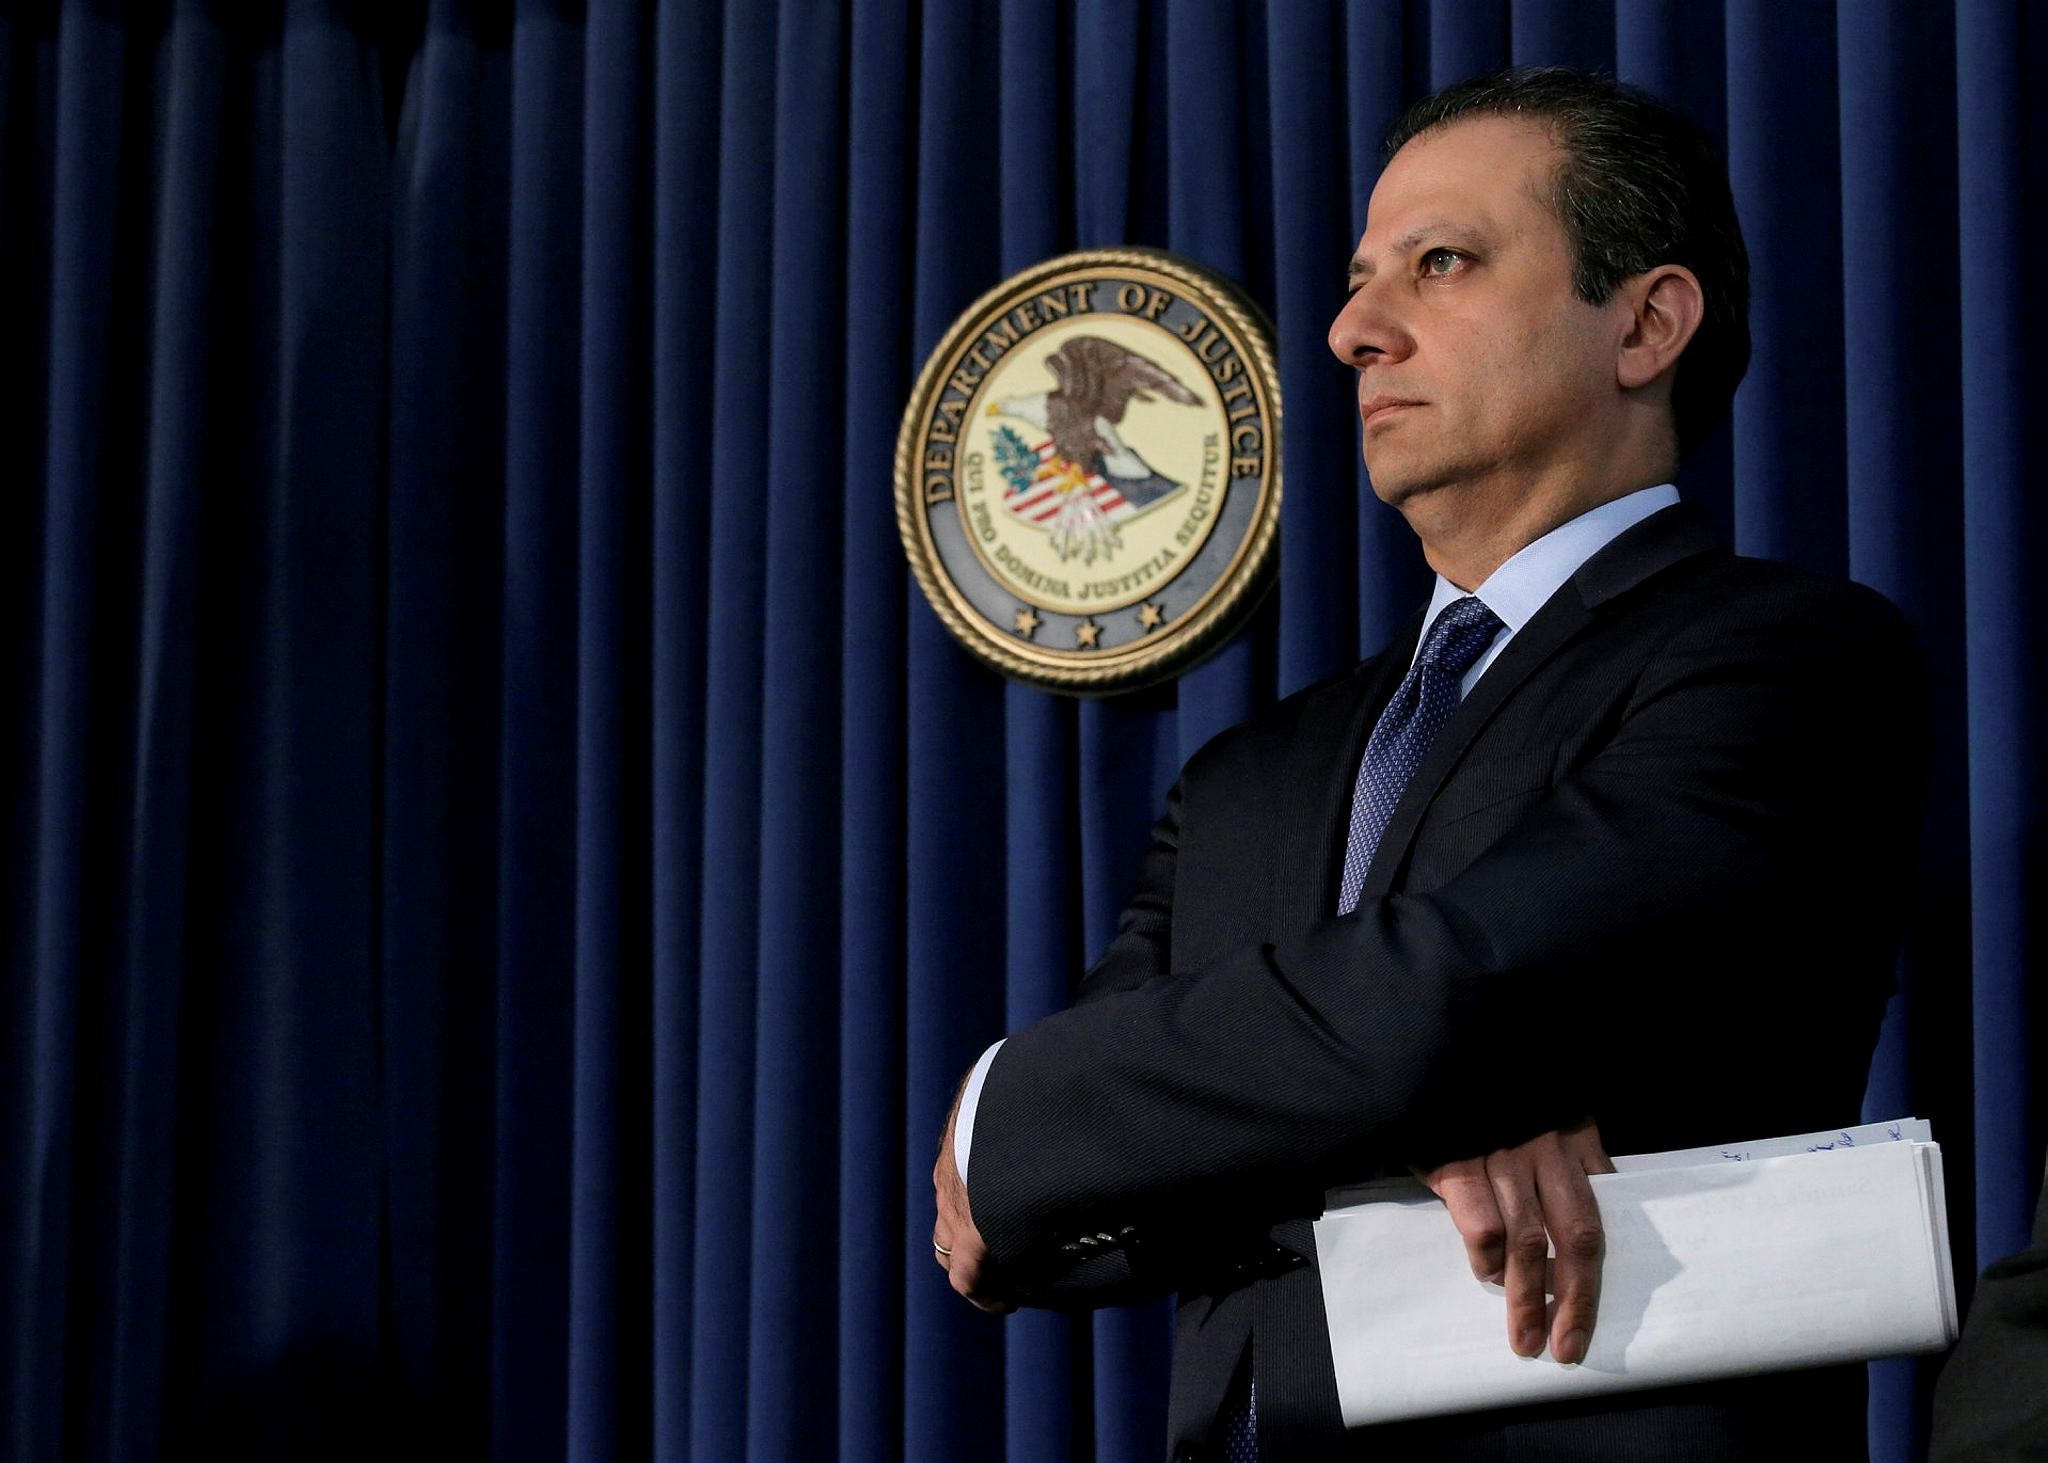 Preet Bharara, former US Attorney for the southern district of New York